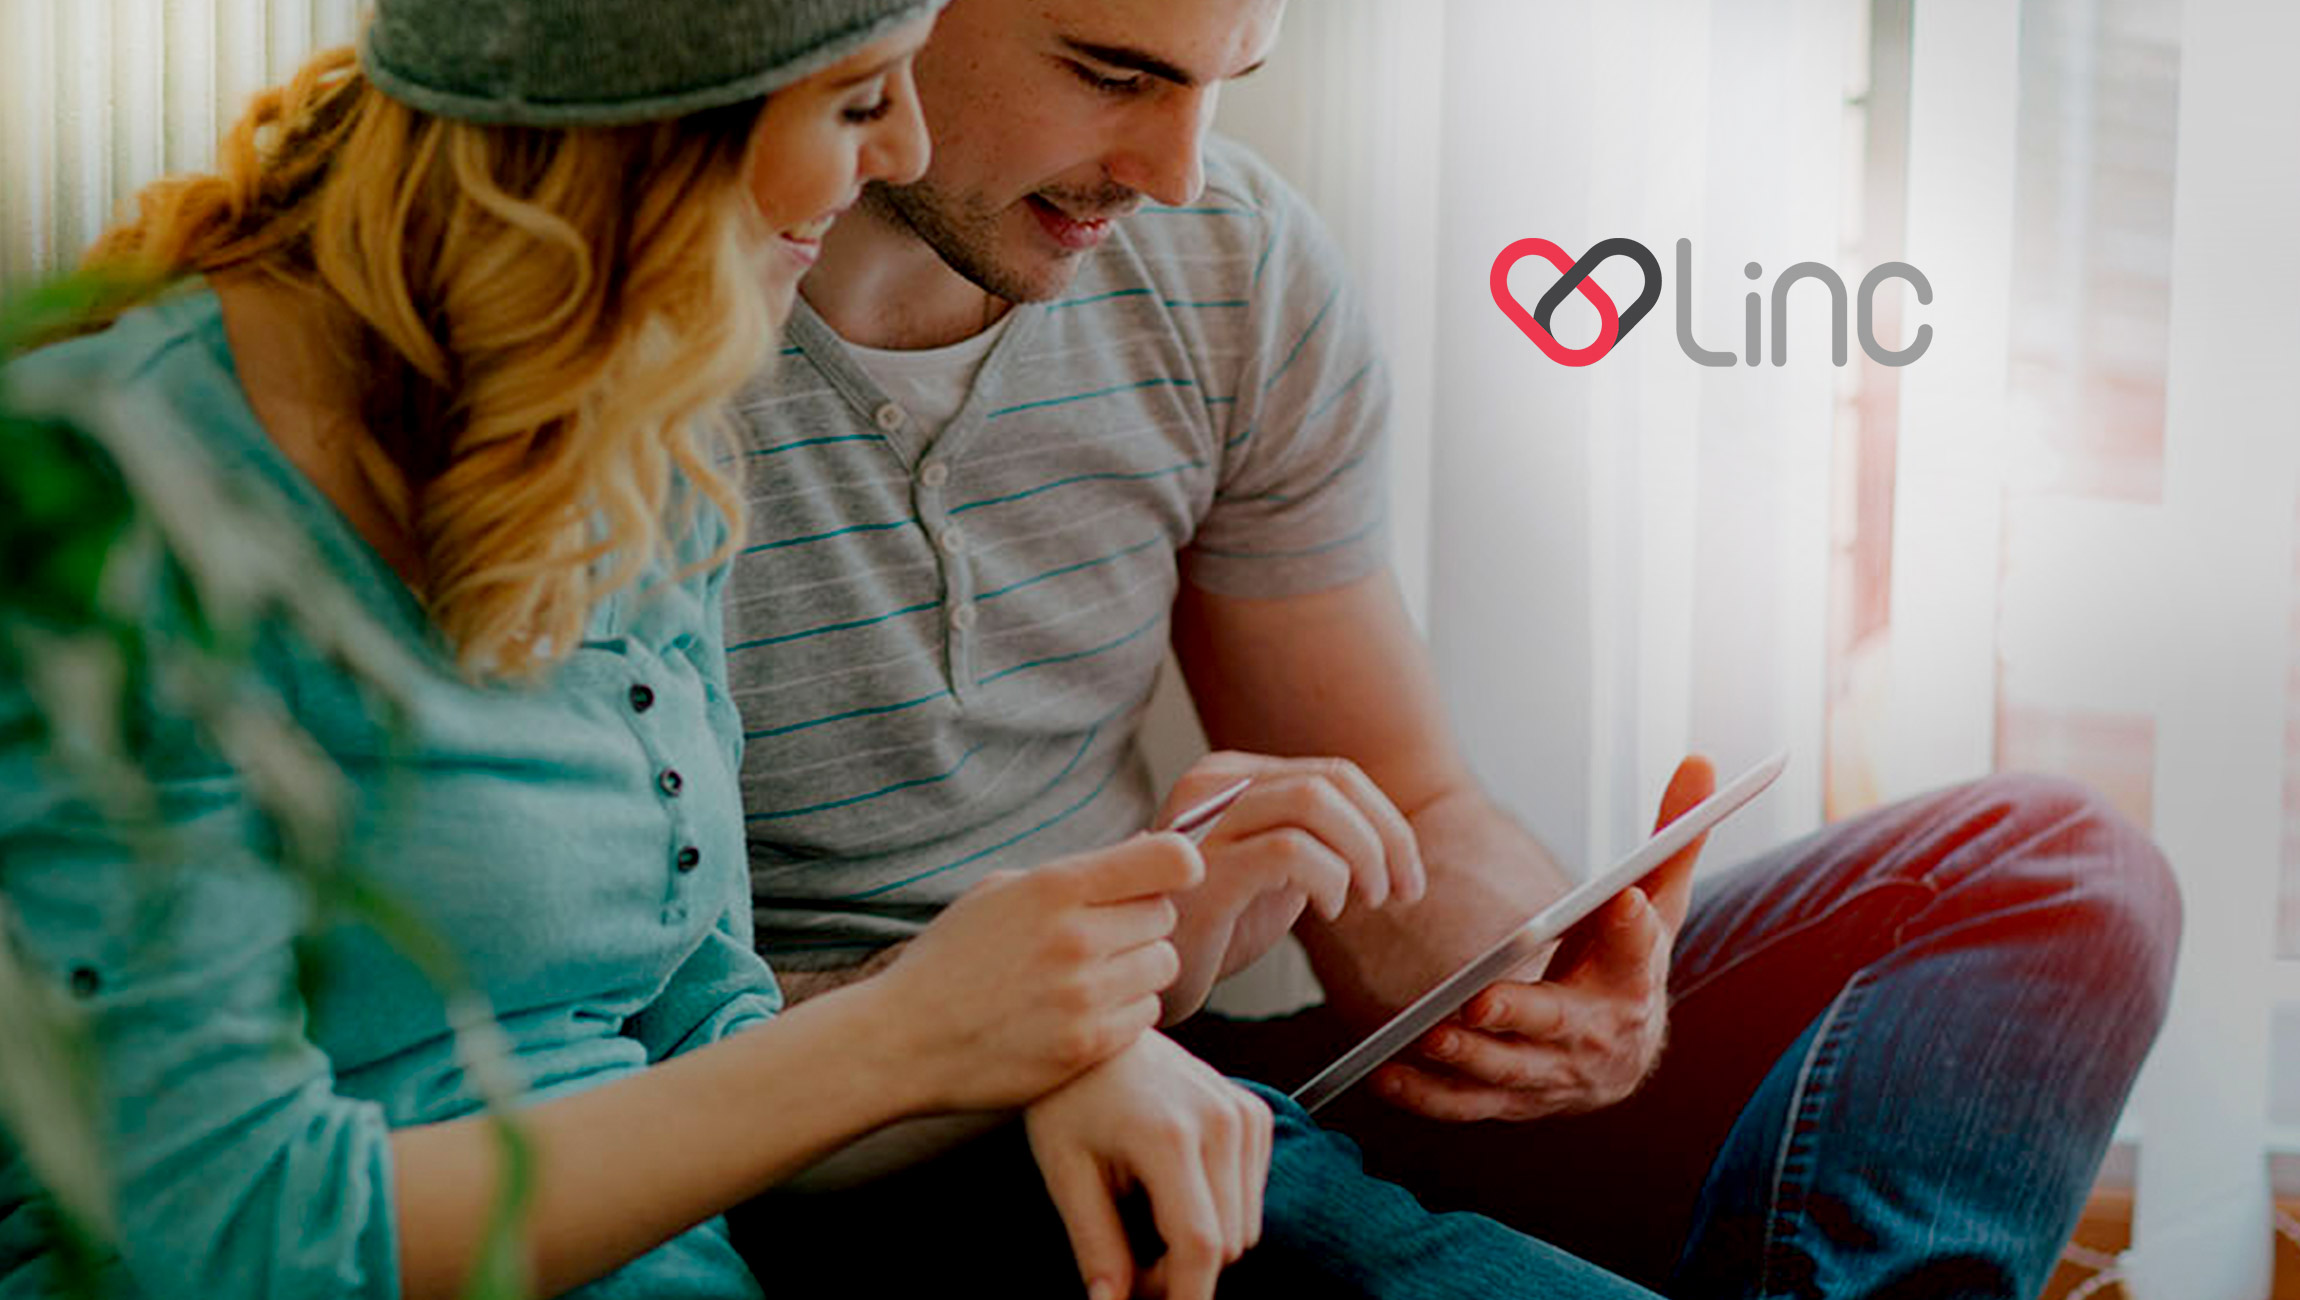 Linc Launches New Auto-Delivery Digital Worker to Help Retailers Seamlessly Facilitate Auto-Delivery Subscriptions